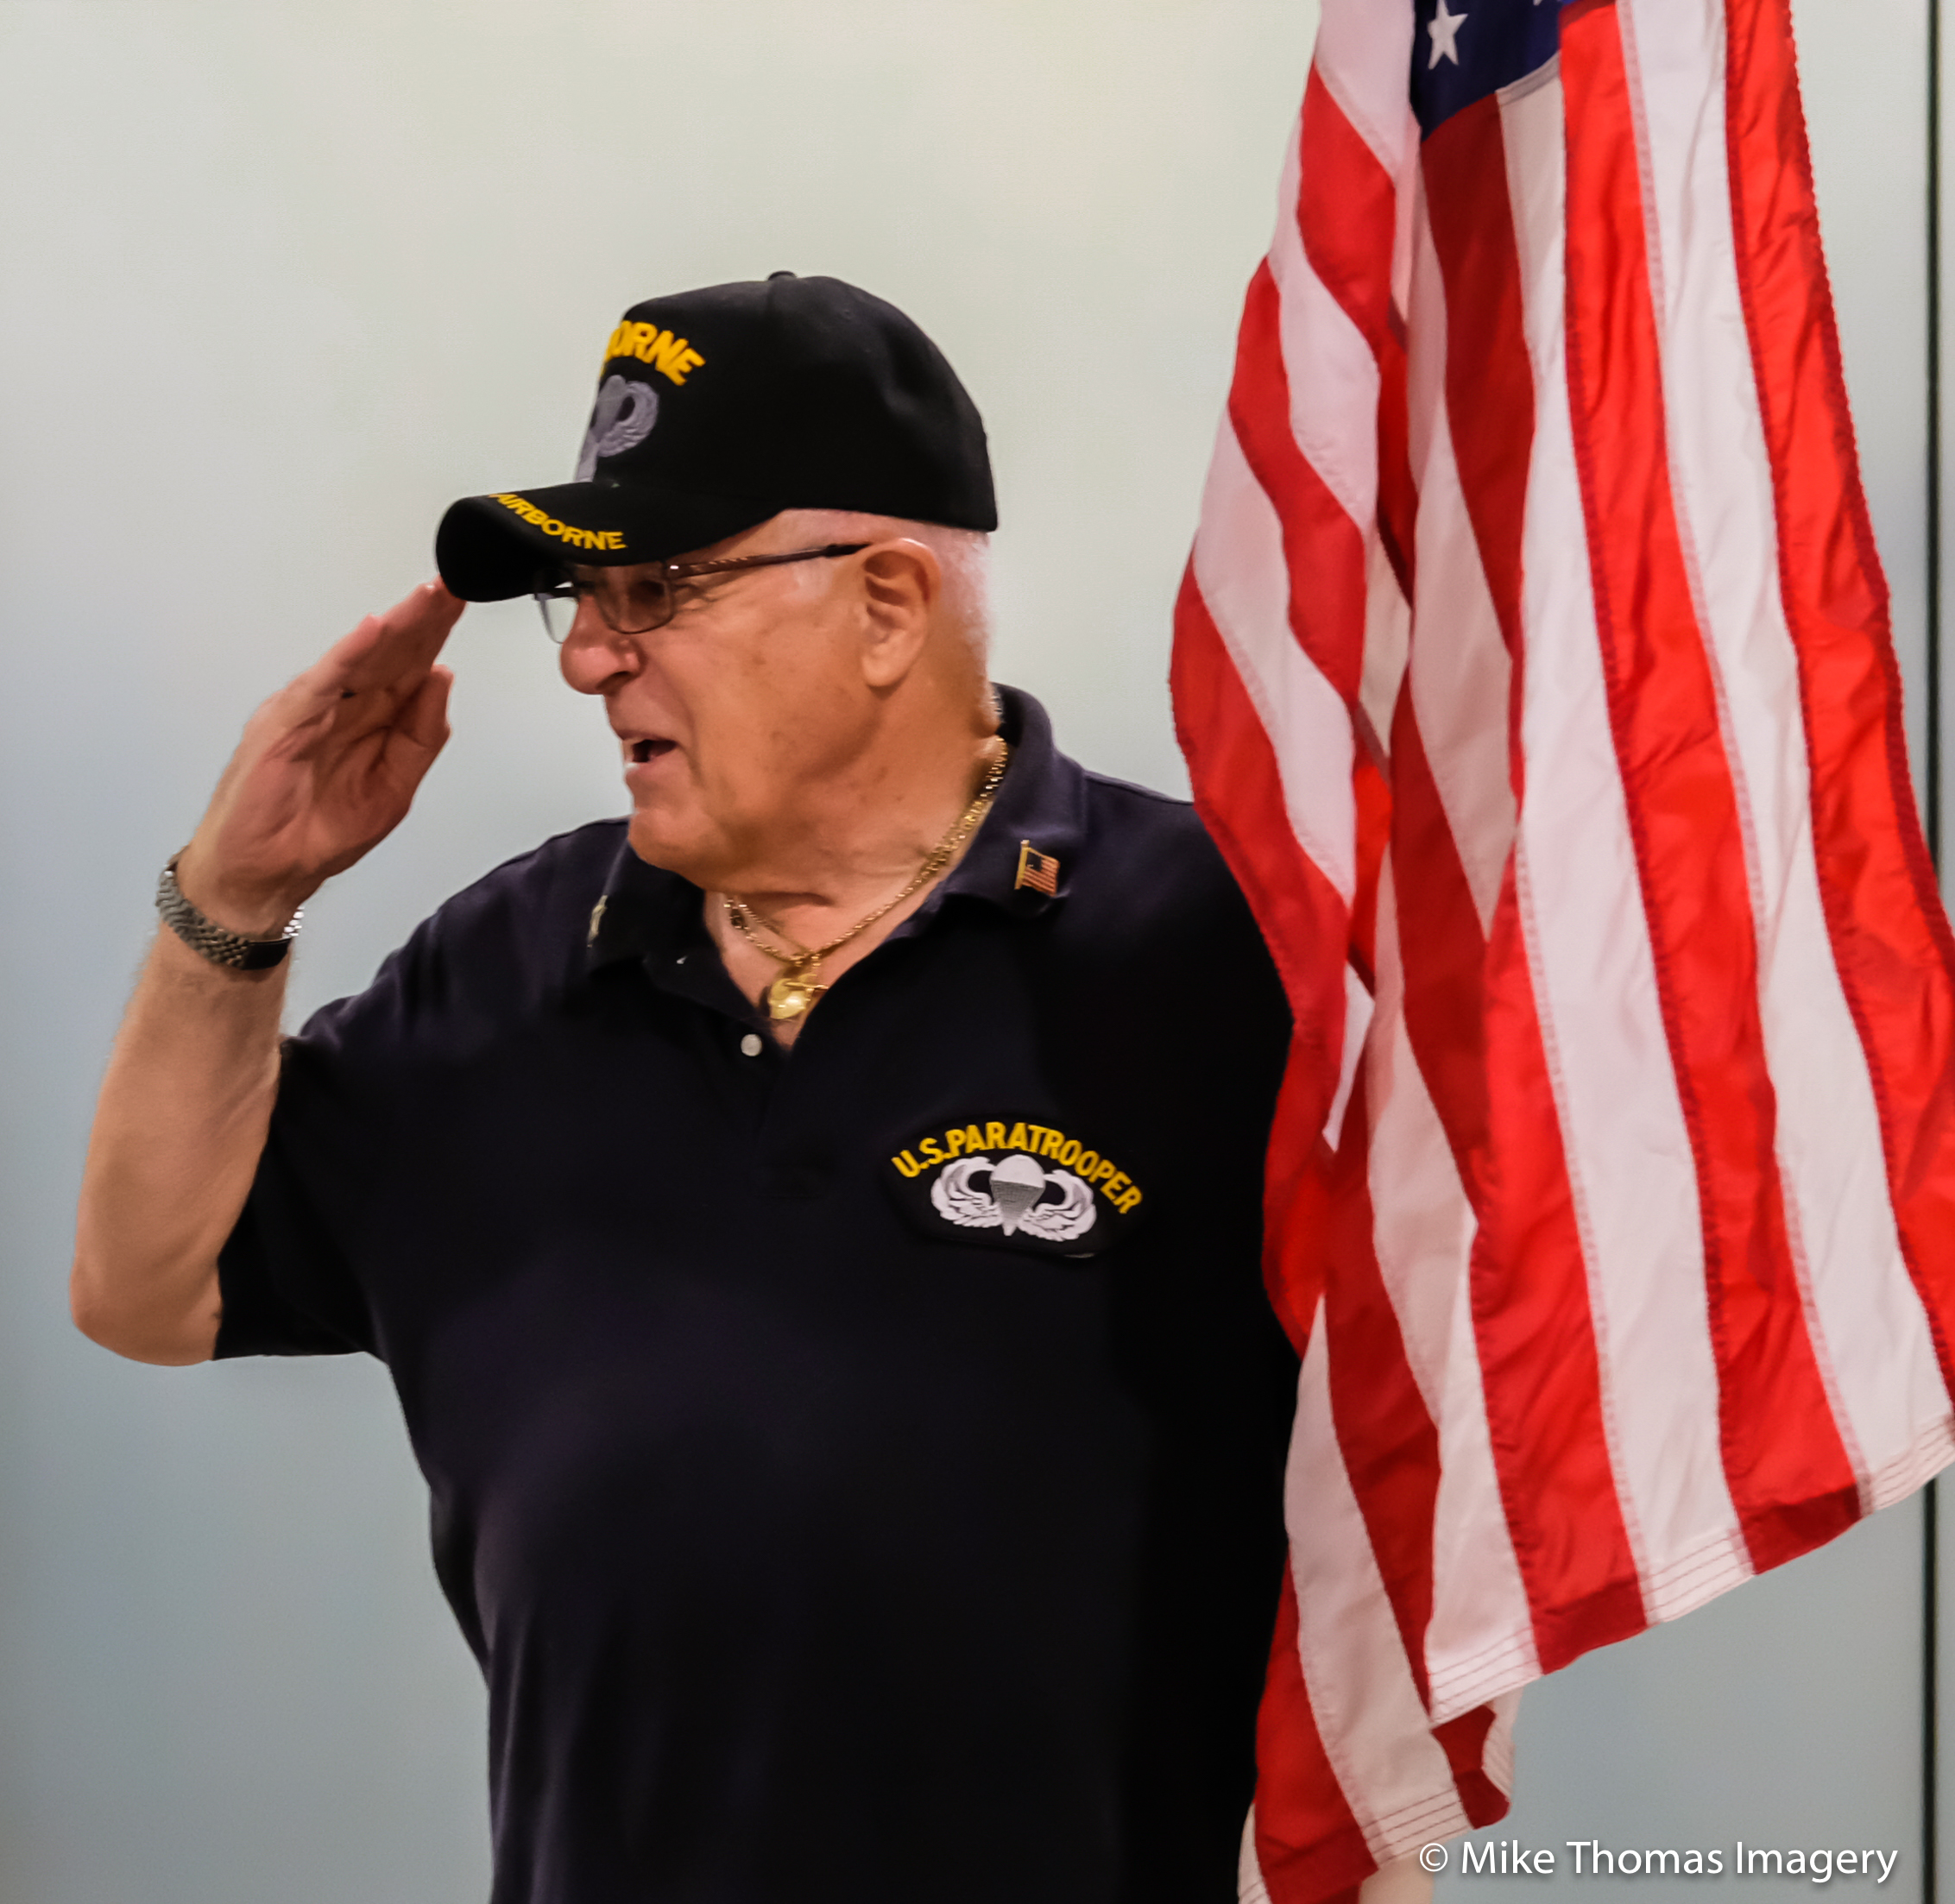 honor flight, military, united states, america, army, navy, marines, air force, coast guard, we, korean war, vietnam, flags